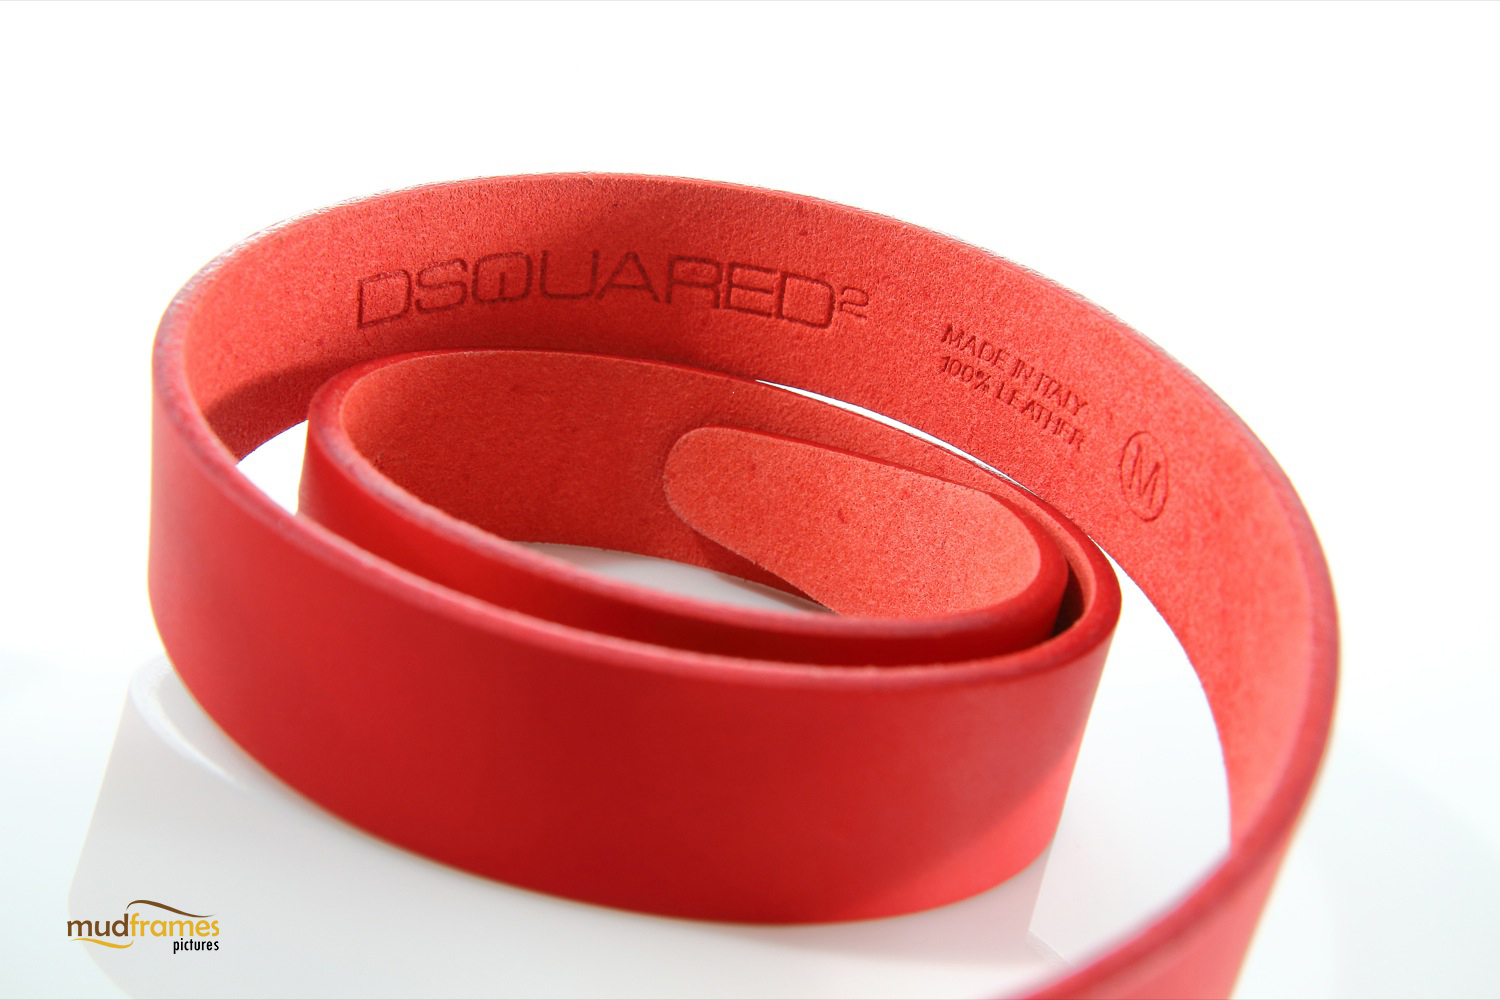 Red Dsquared leather belt on white background